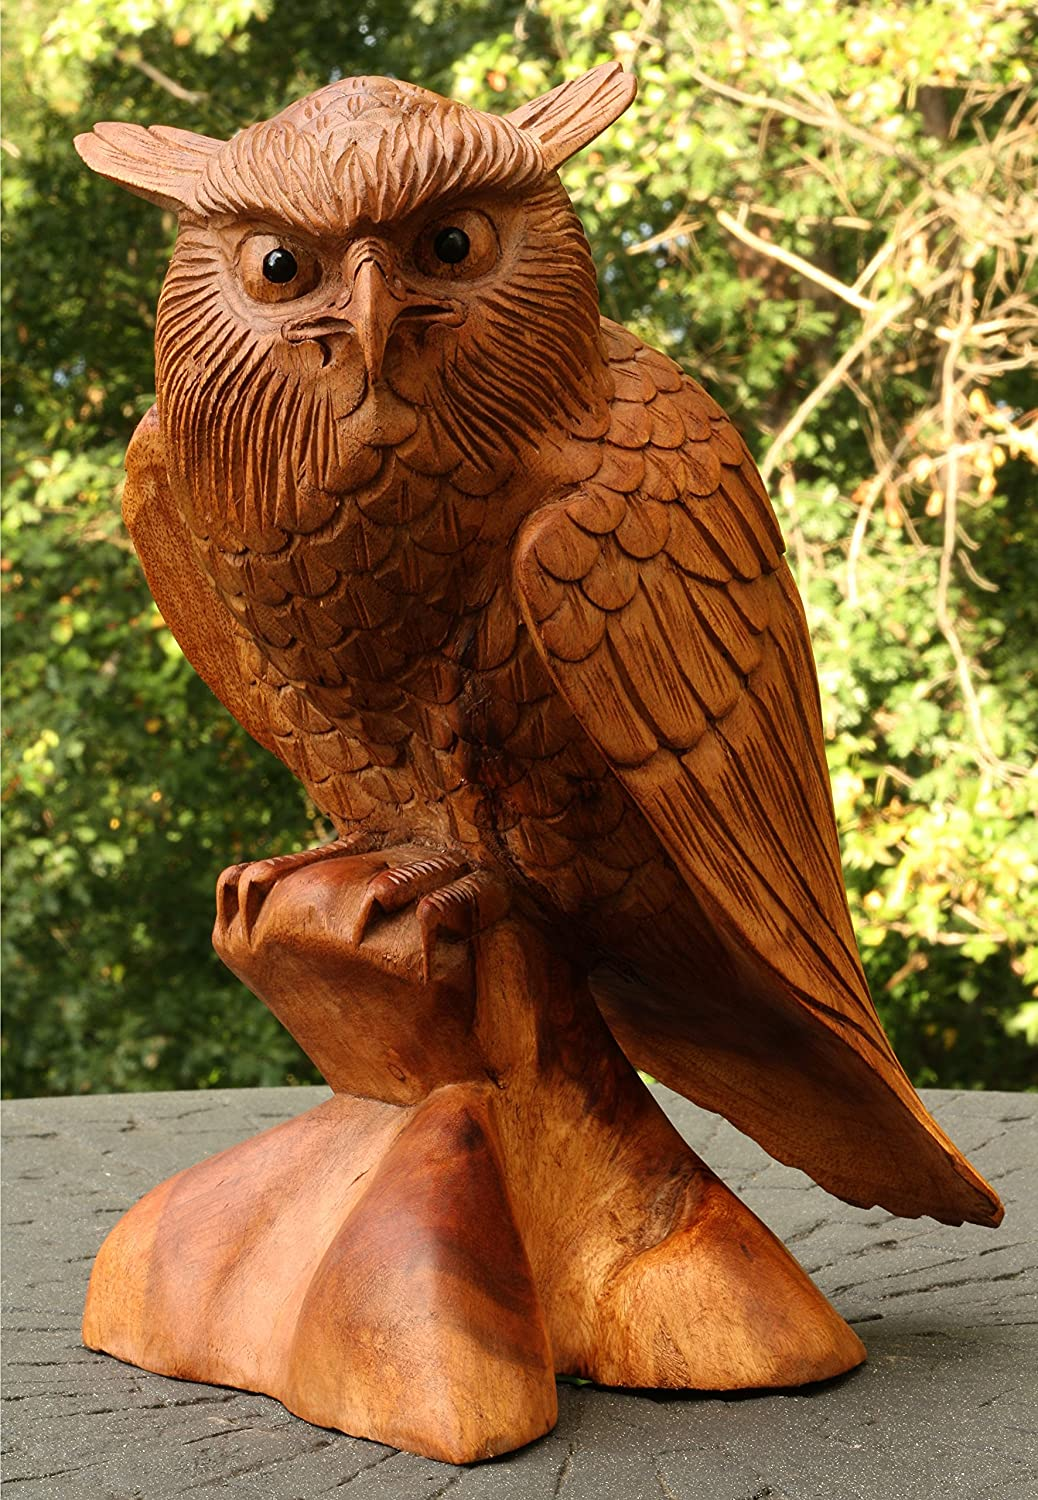 """G6 Collection 12"""" Large Solid Wooden Handmade Owl Statue Handcrafted Figurine Art Home Decor Sculpture Hand Carved Decorative Rustic Accent Decoration Large Owl"""